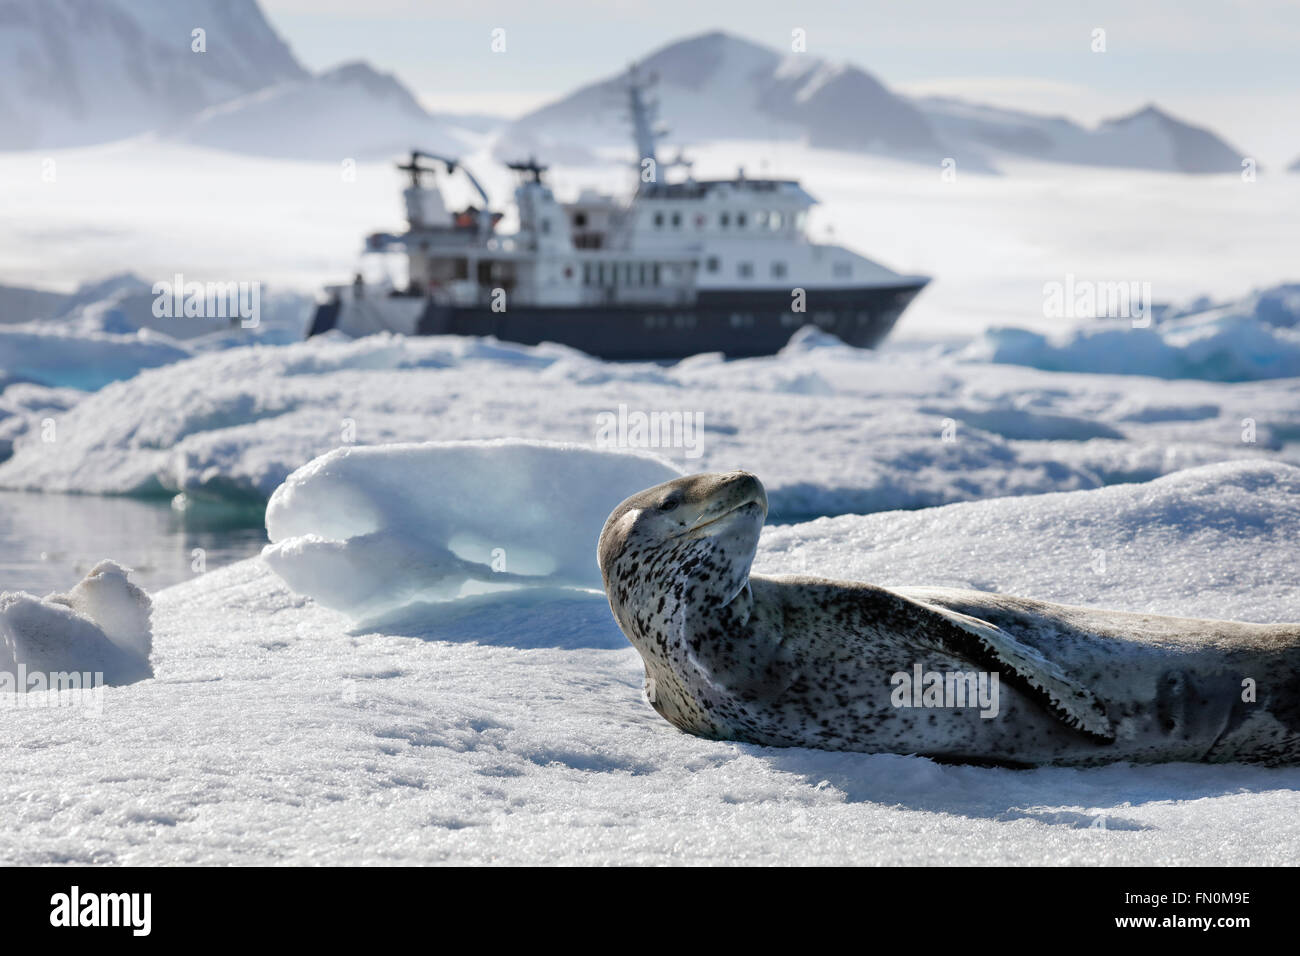 Antarctica, Antarctic peninsula, Brown Bluff, Leopard seal lying on ice floe with expedition ship Hanse Explorer - Stock Image